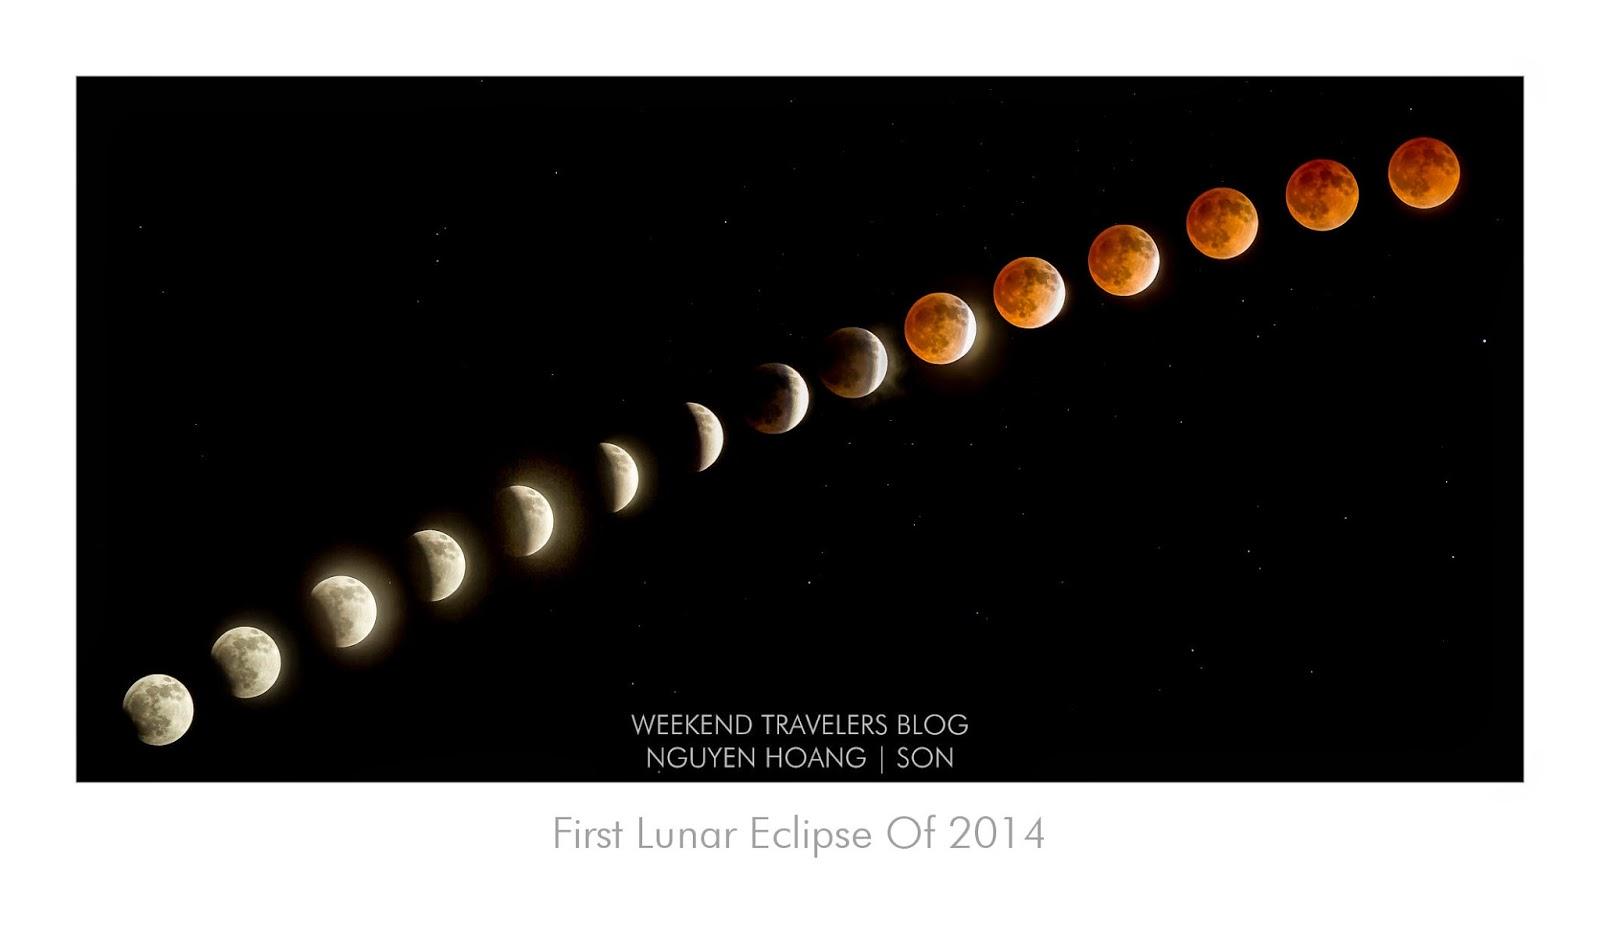 Total Lunar Eclipse in North American April 15th, 2014, First tetrad